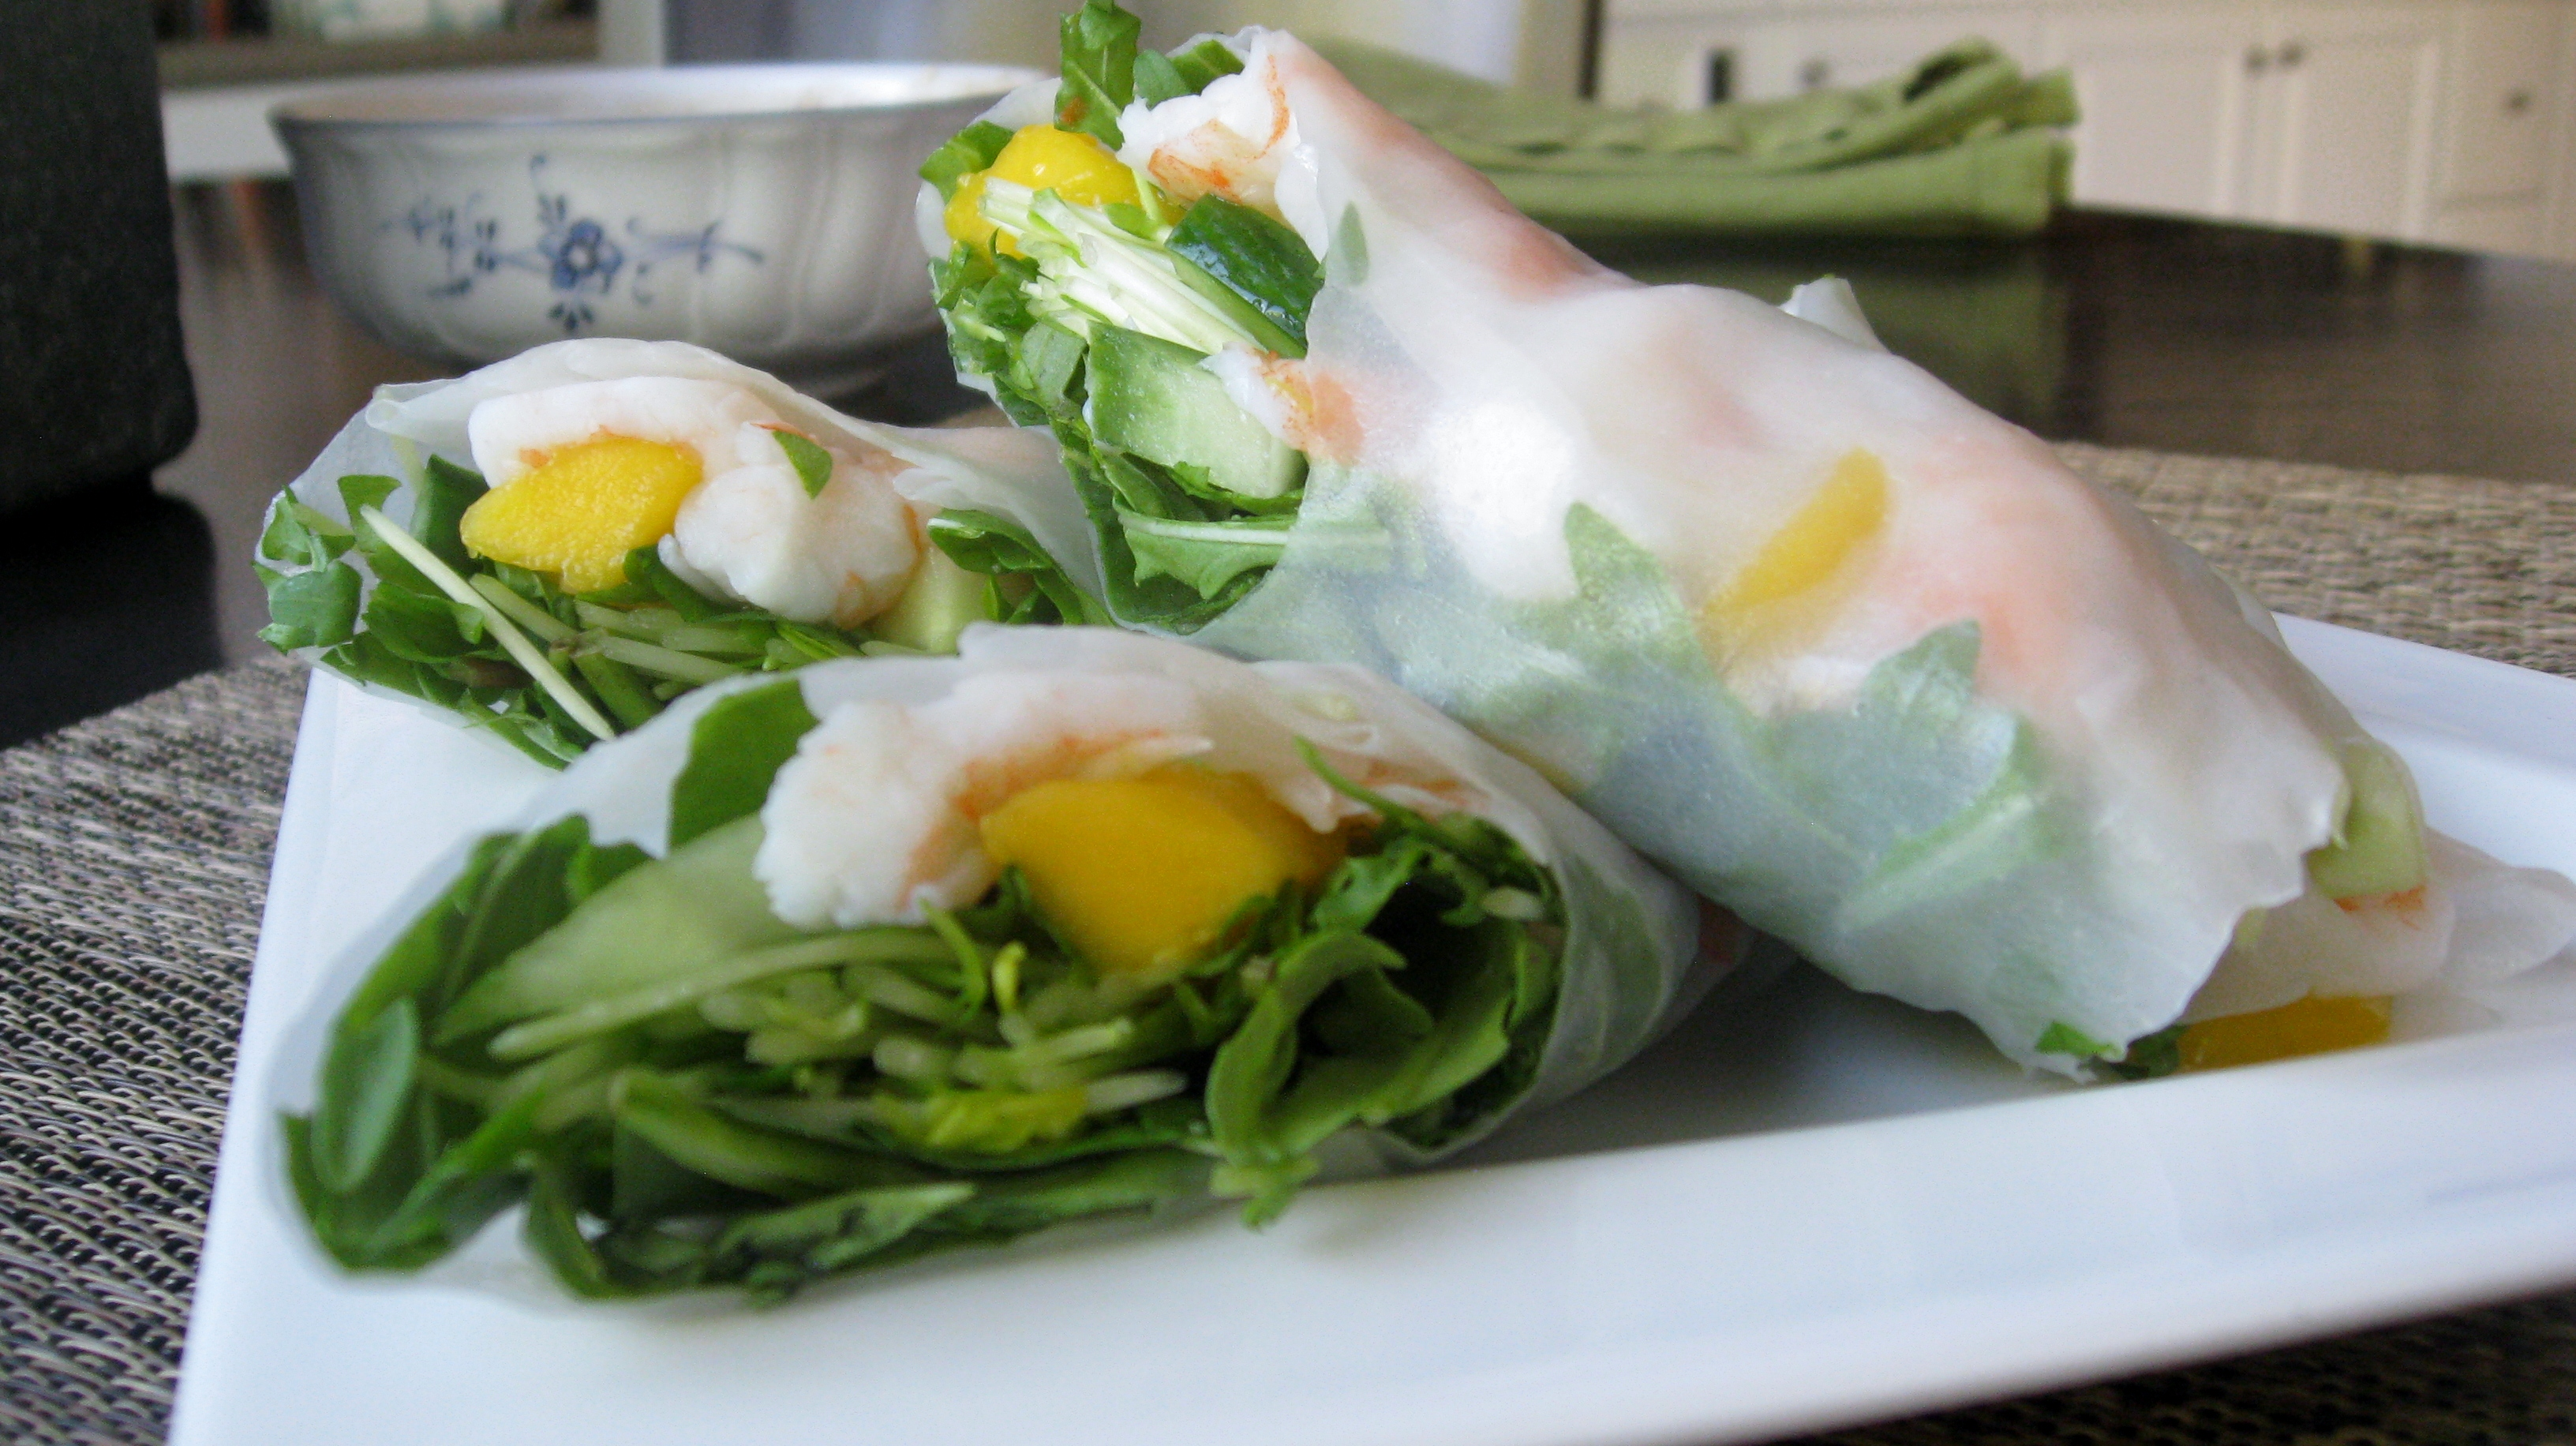 ... spring rolls ceviche spring rolls whole spring rolls and some ceviche